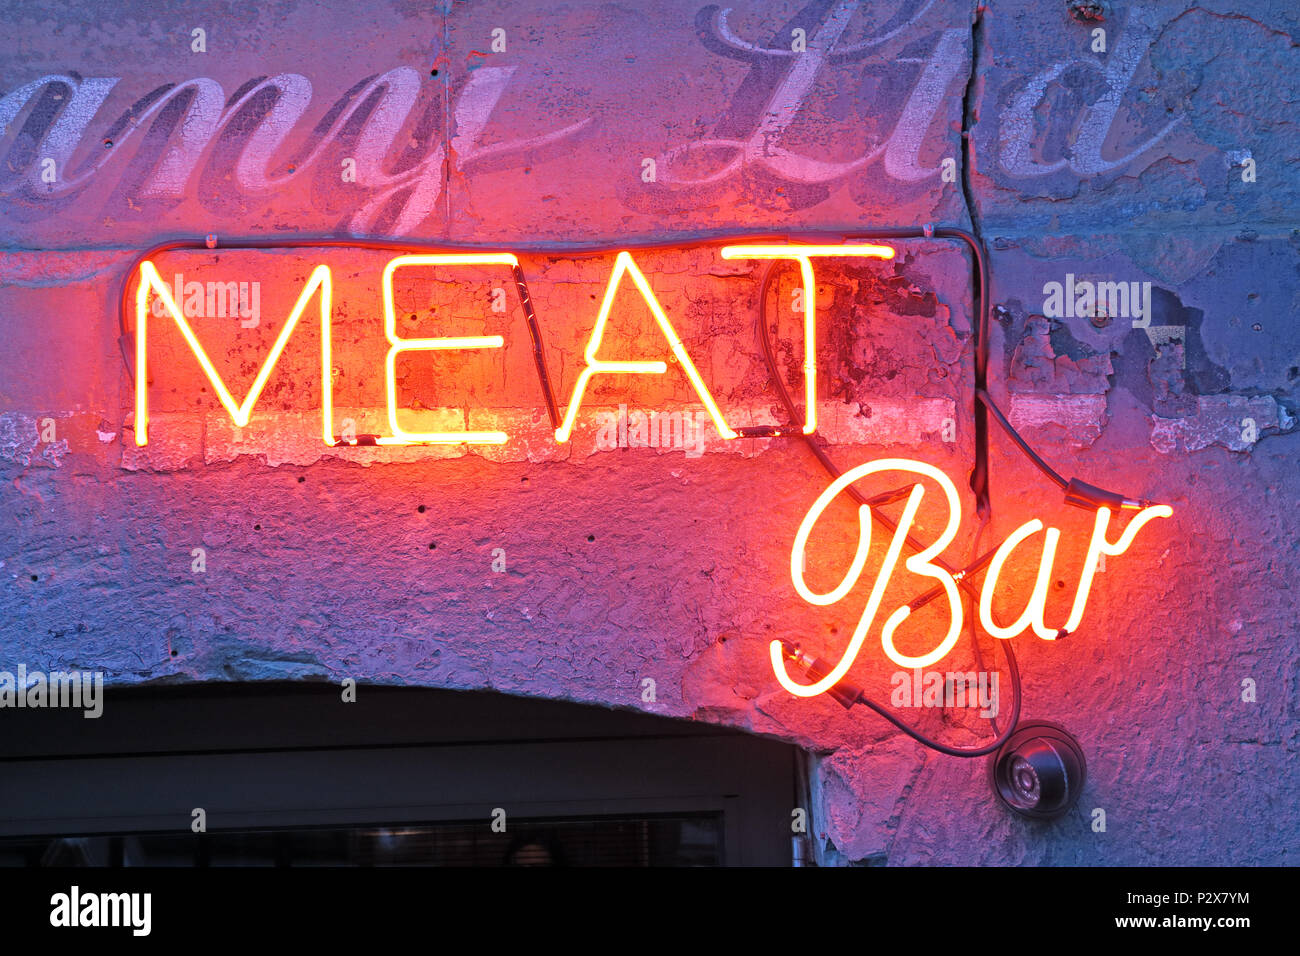 Meat bar sign, Glasgow, 142 West Regent Street Glasgow, Scotland, UK, G2 2RQ - Stock Image